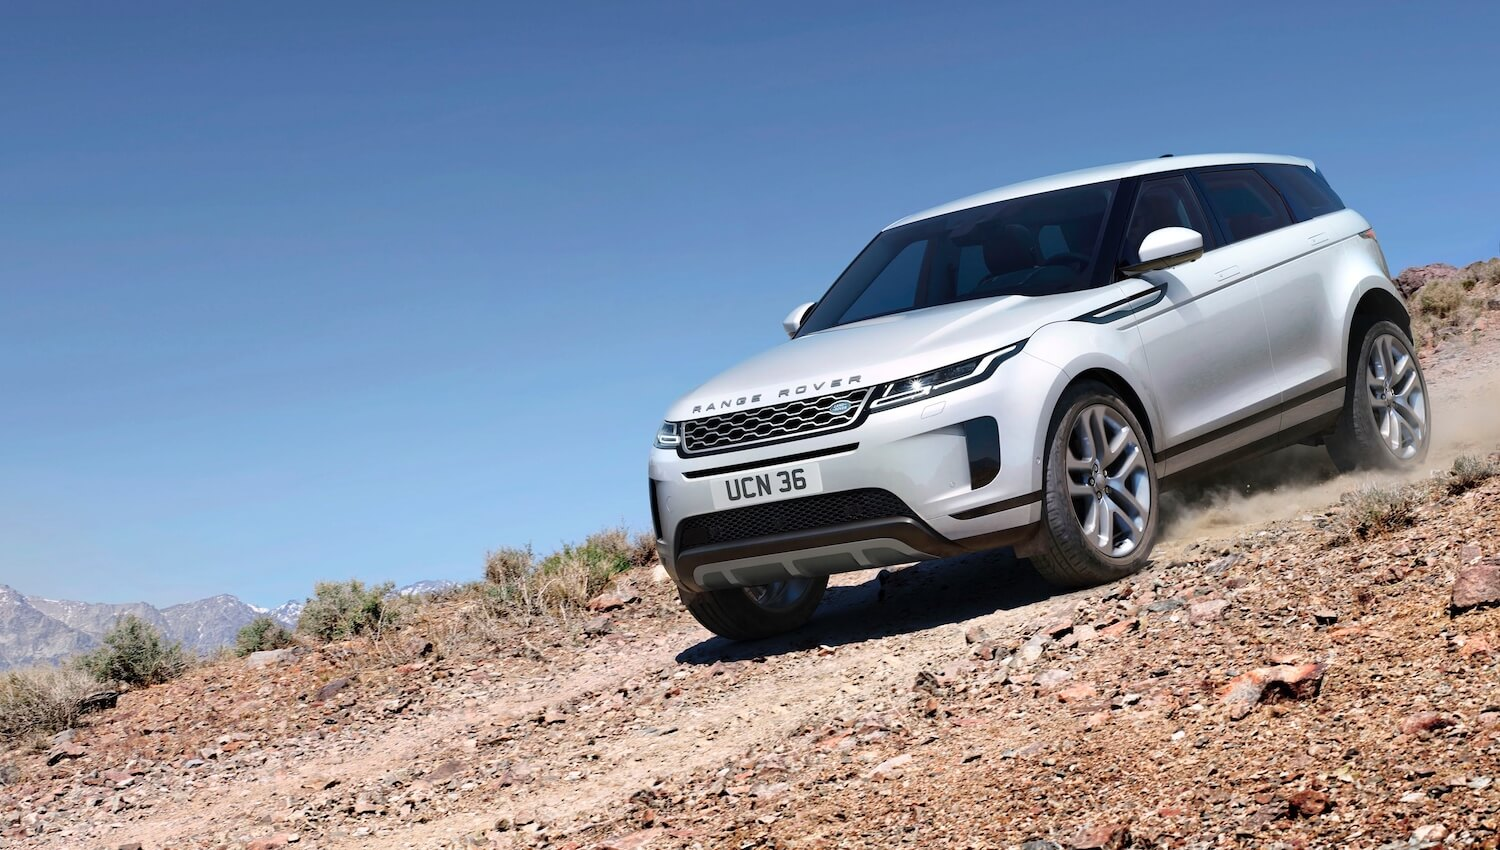 new range rover evoque hybrid plug in expert review 2018. Black Bedroom Furniture Sets. Home Design Ideas